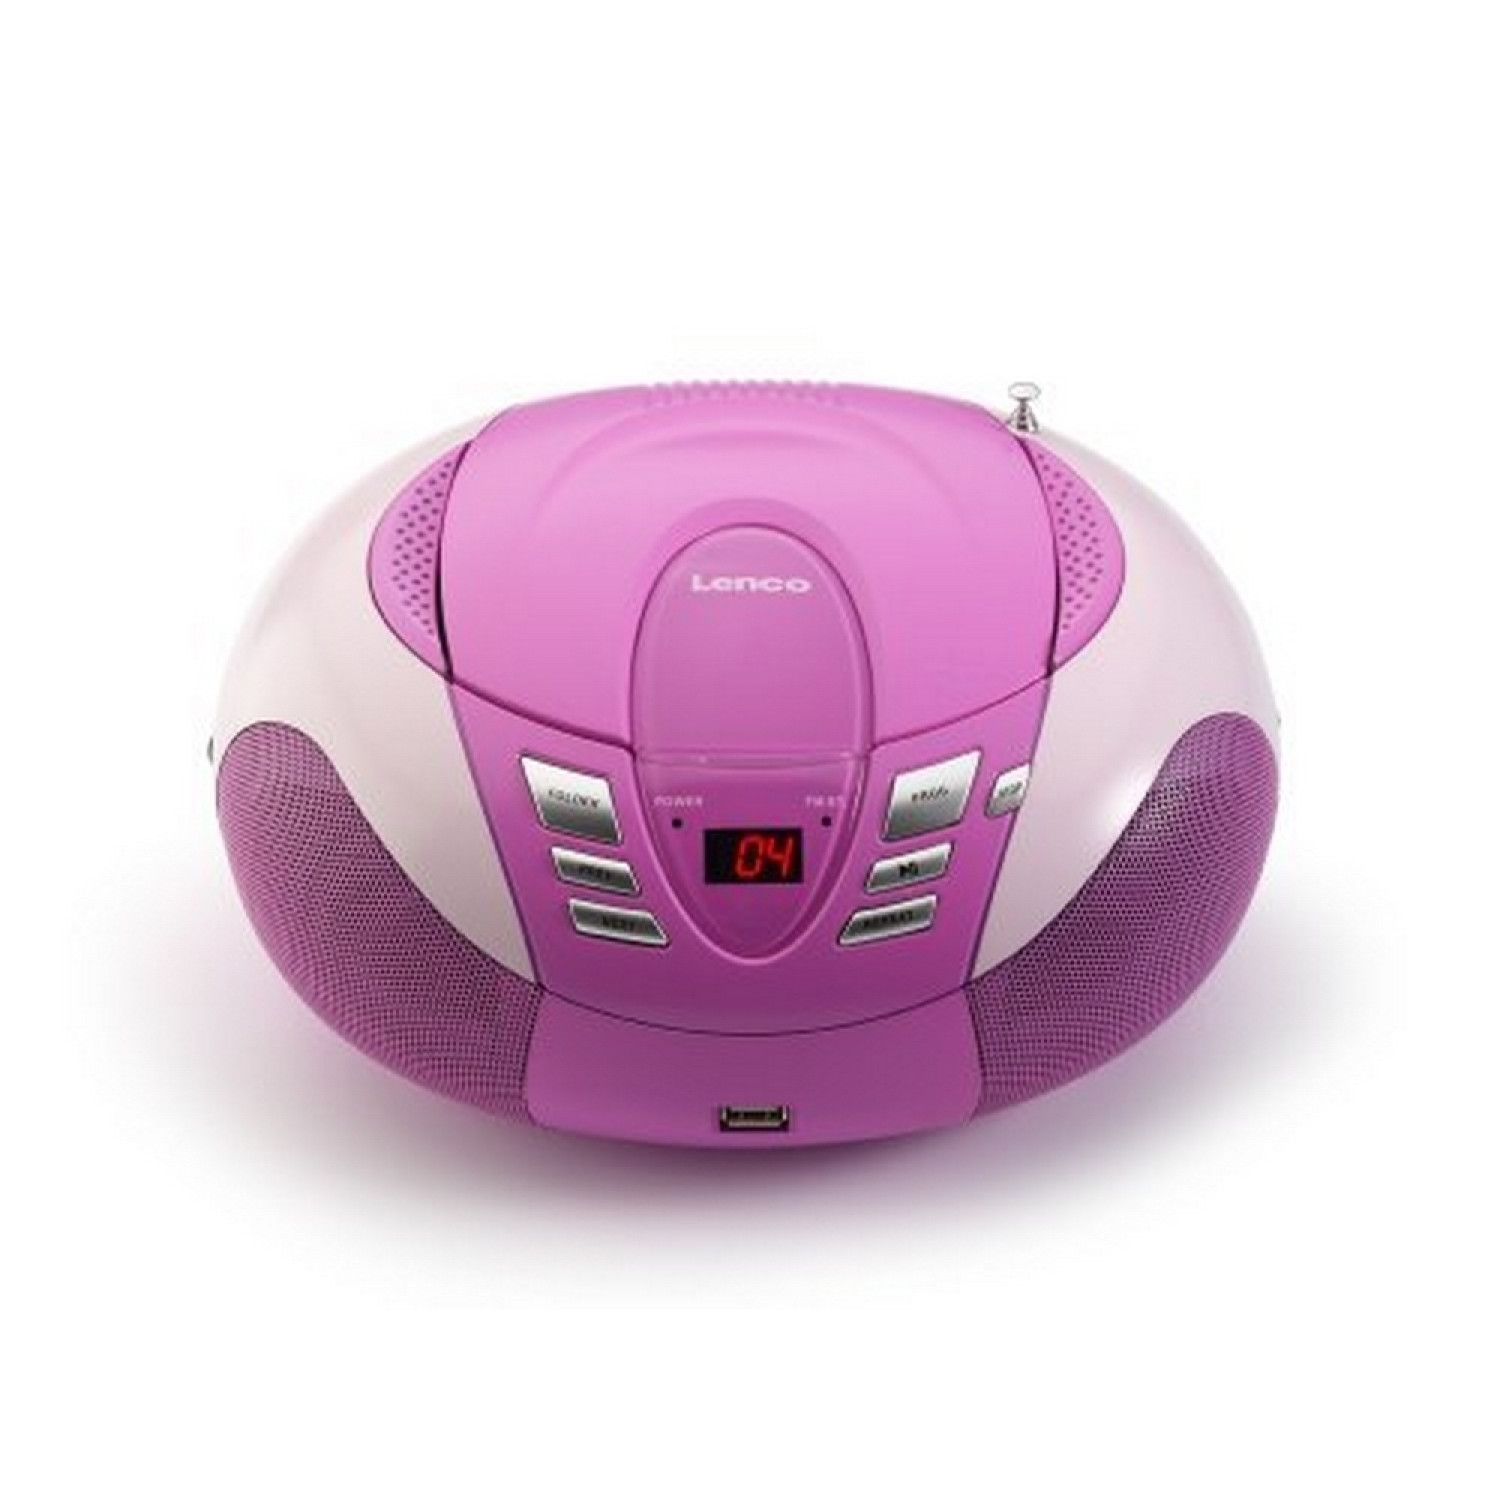 SCD-37 Radio AM/FM Portable avec Lecteur CD/mp3/wma Port USB Rose